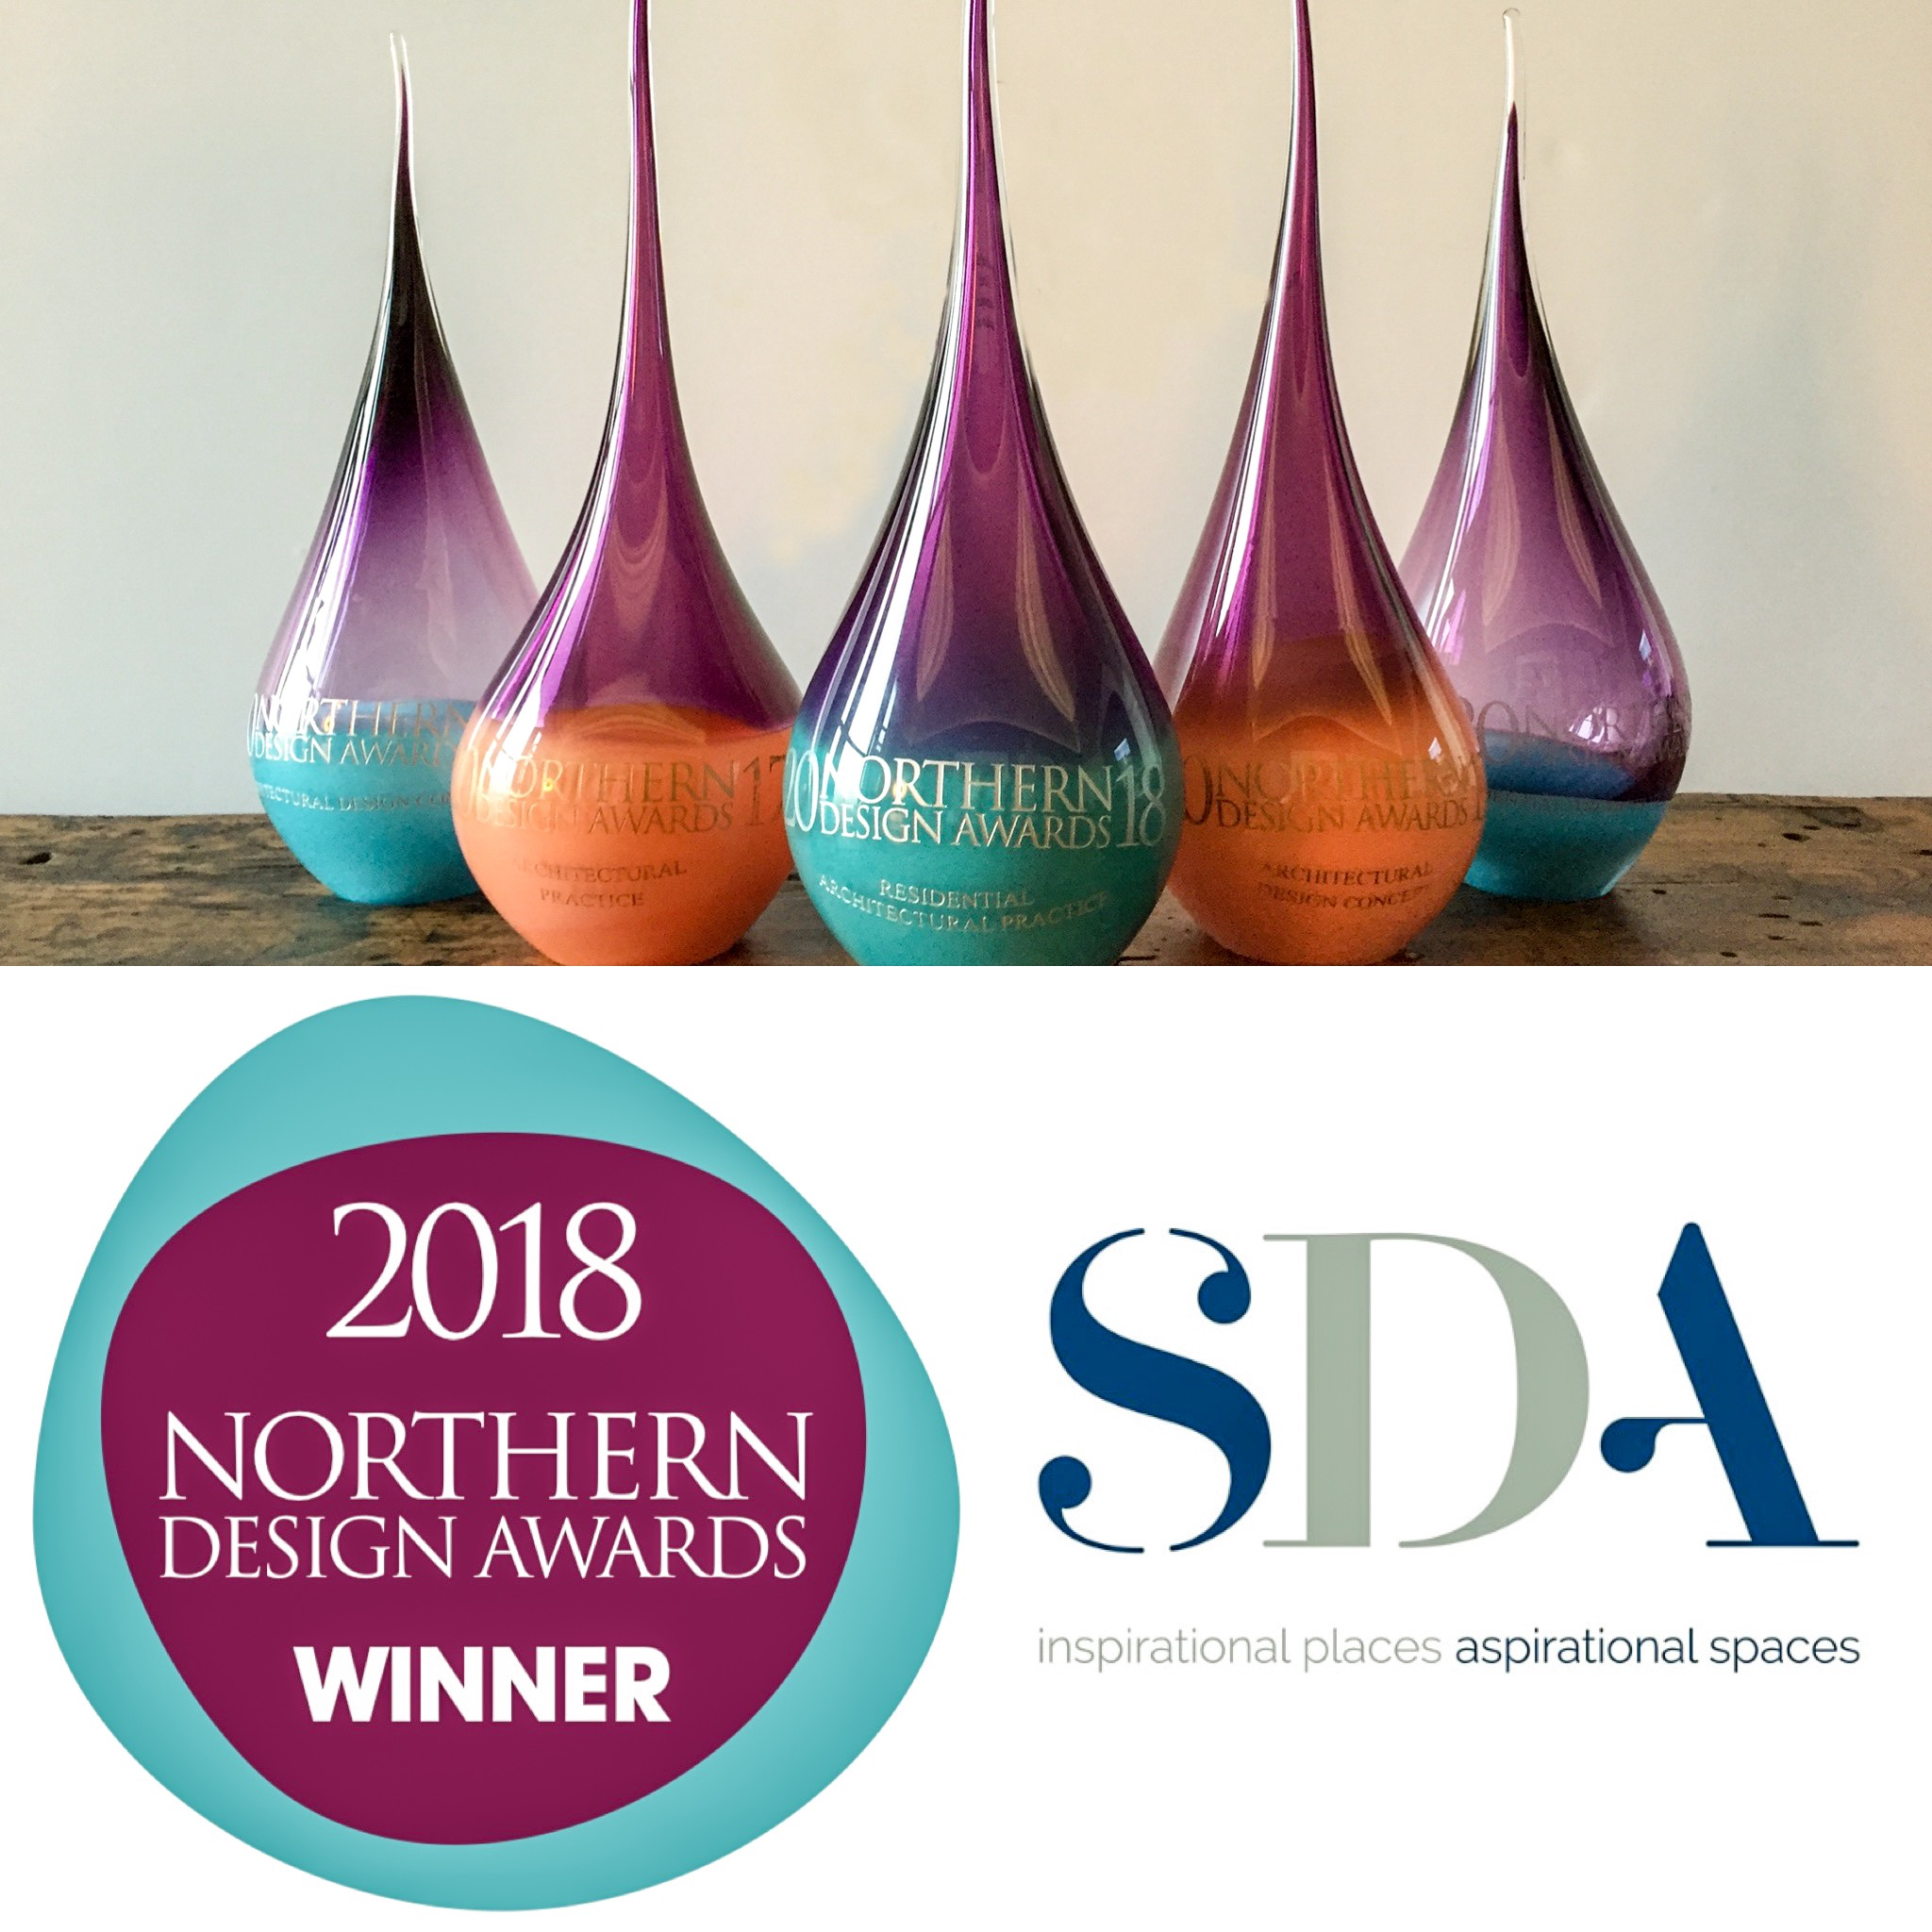 SDA win the 2018 Nothern Design awards.